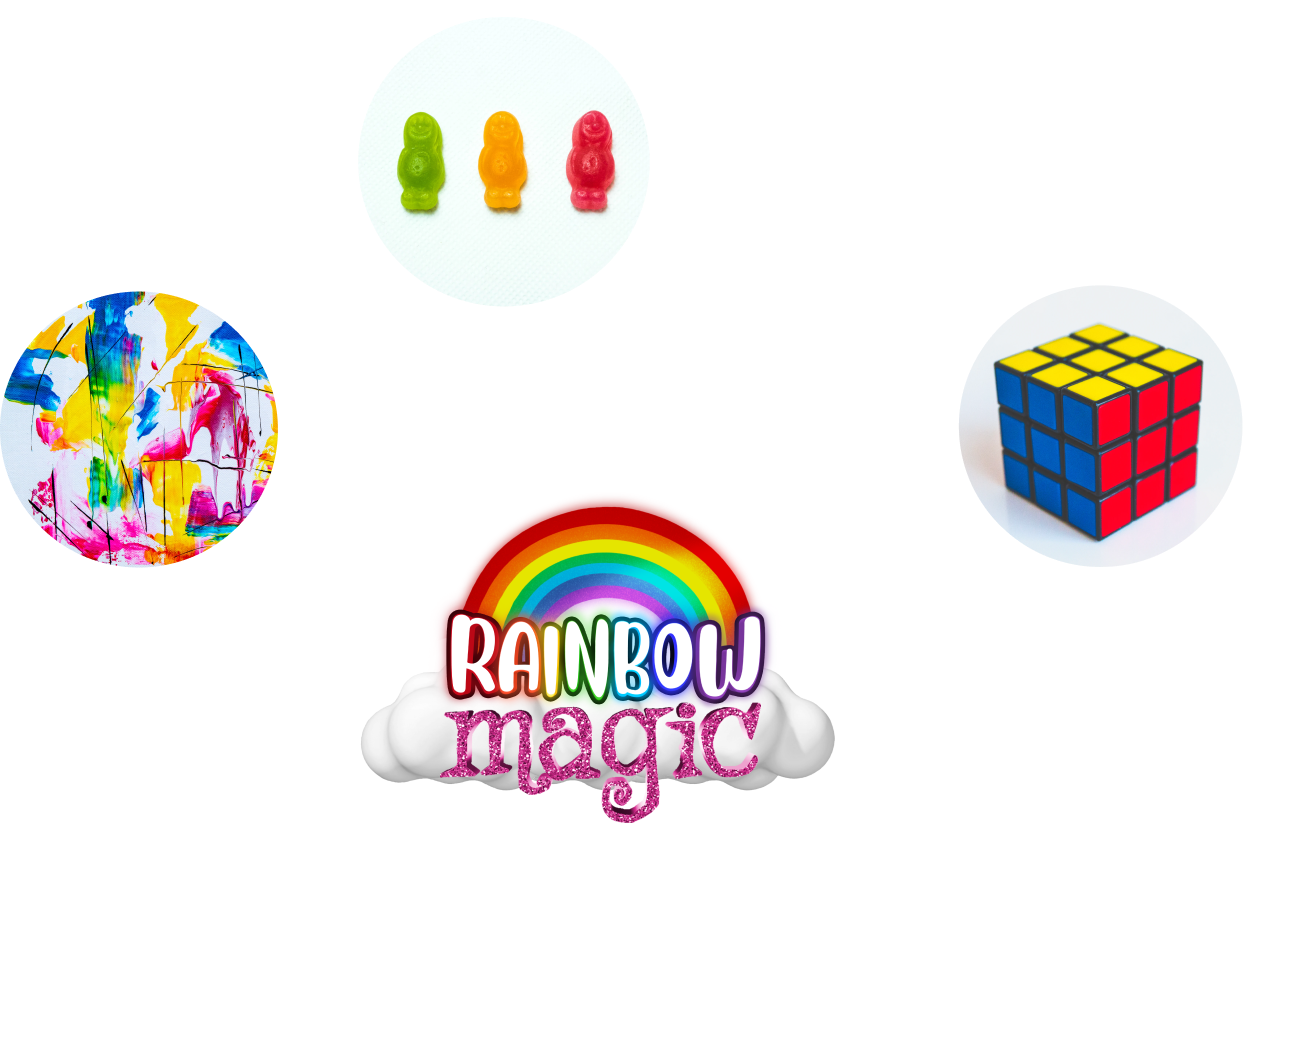 Rainbow Magic and unknown future content!